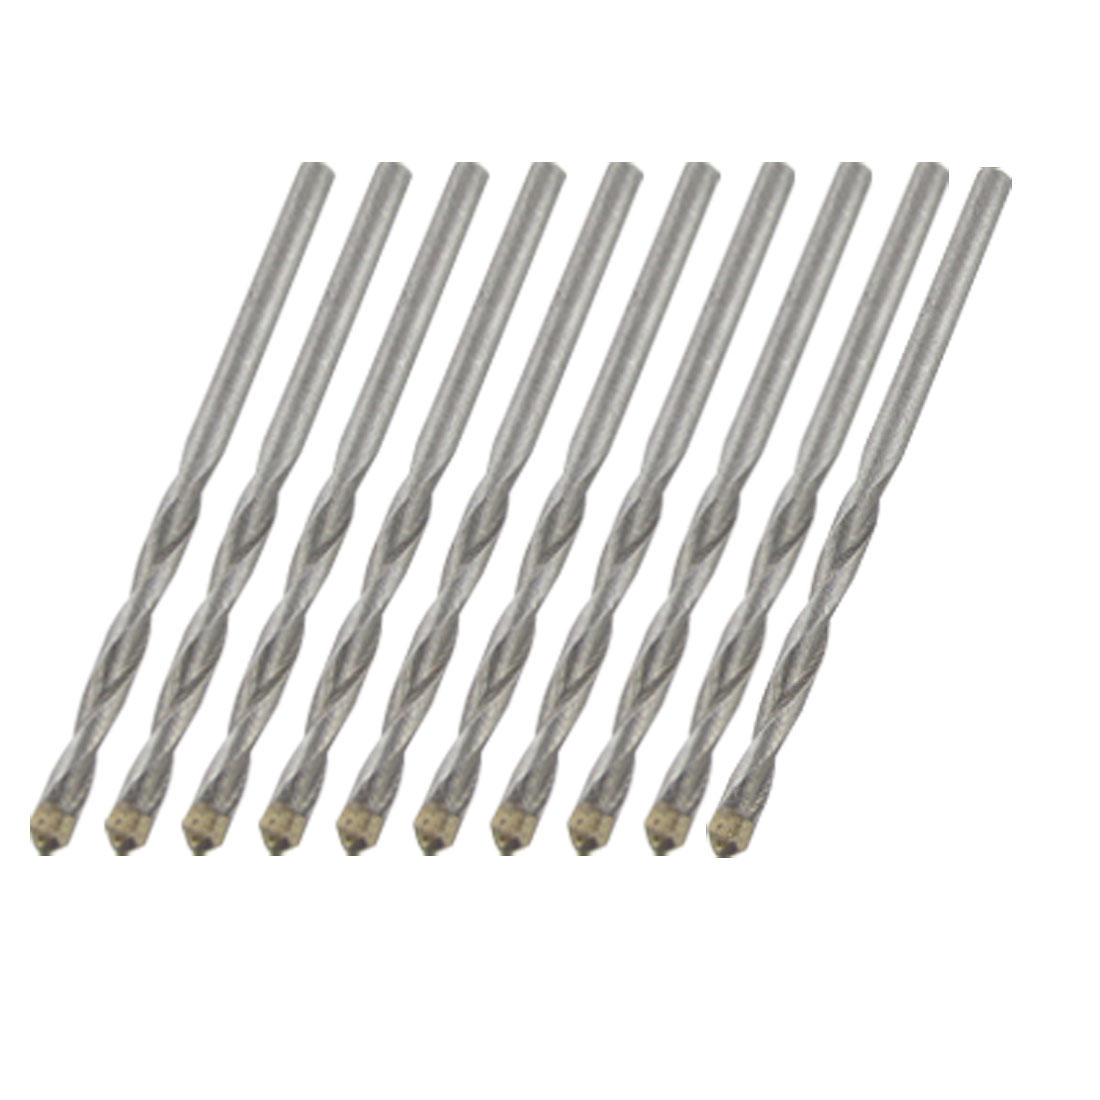 10 pcs 6mm Width Tip U-flute Masonry Percussion Hammer Drill Bits